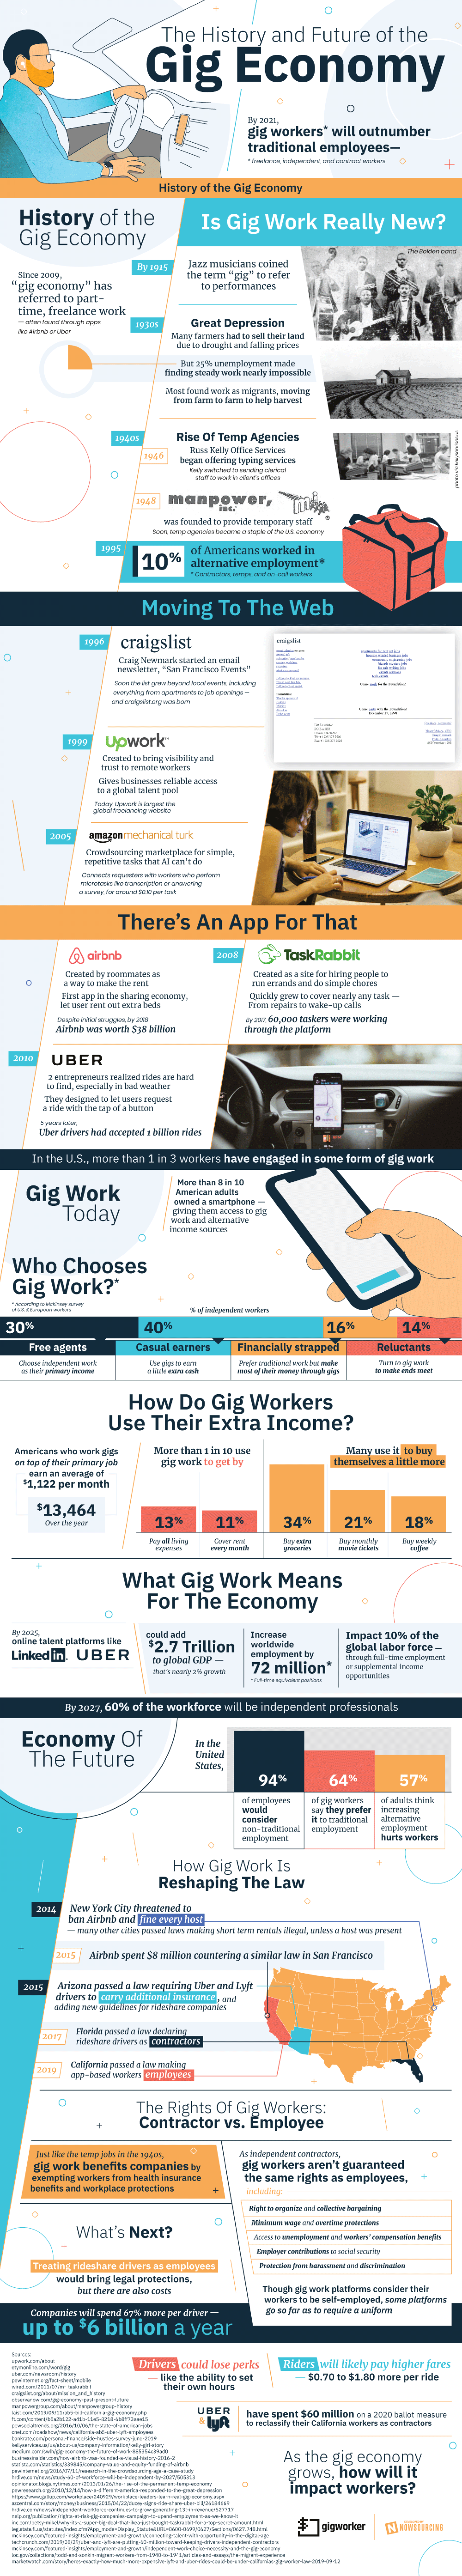 The Rise of the Gig Economy Infographic